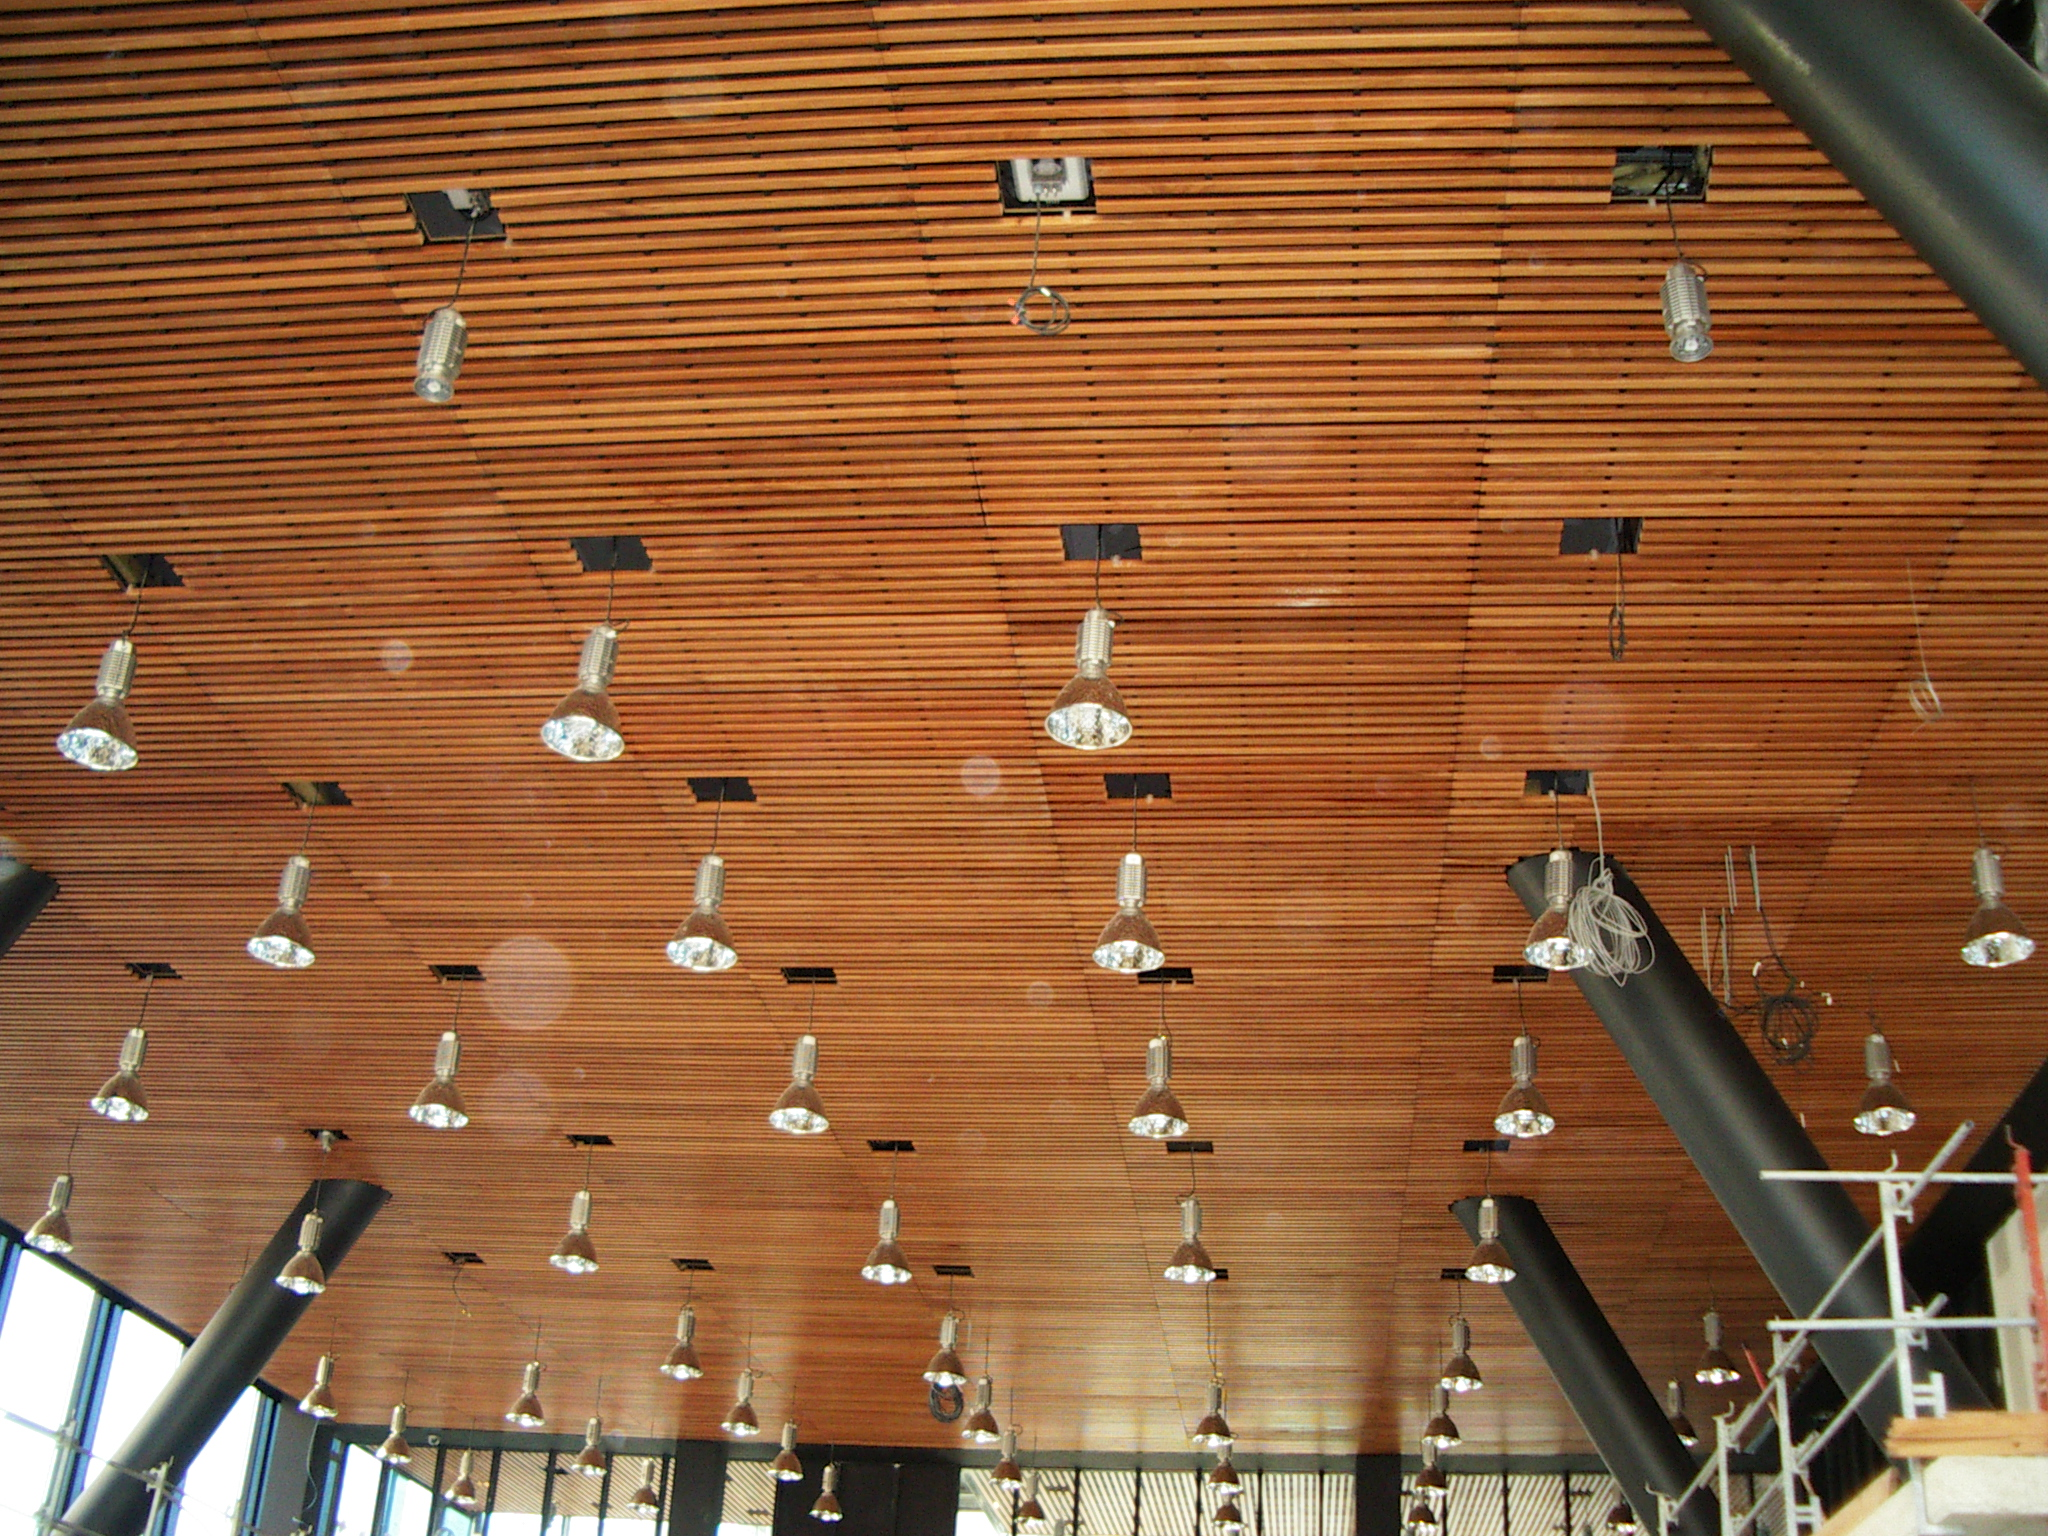 Ceiling of urban district hall